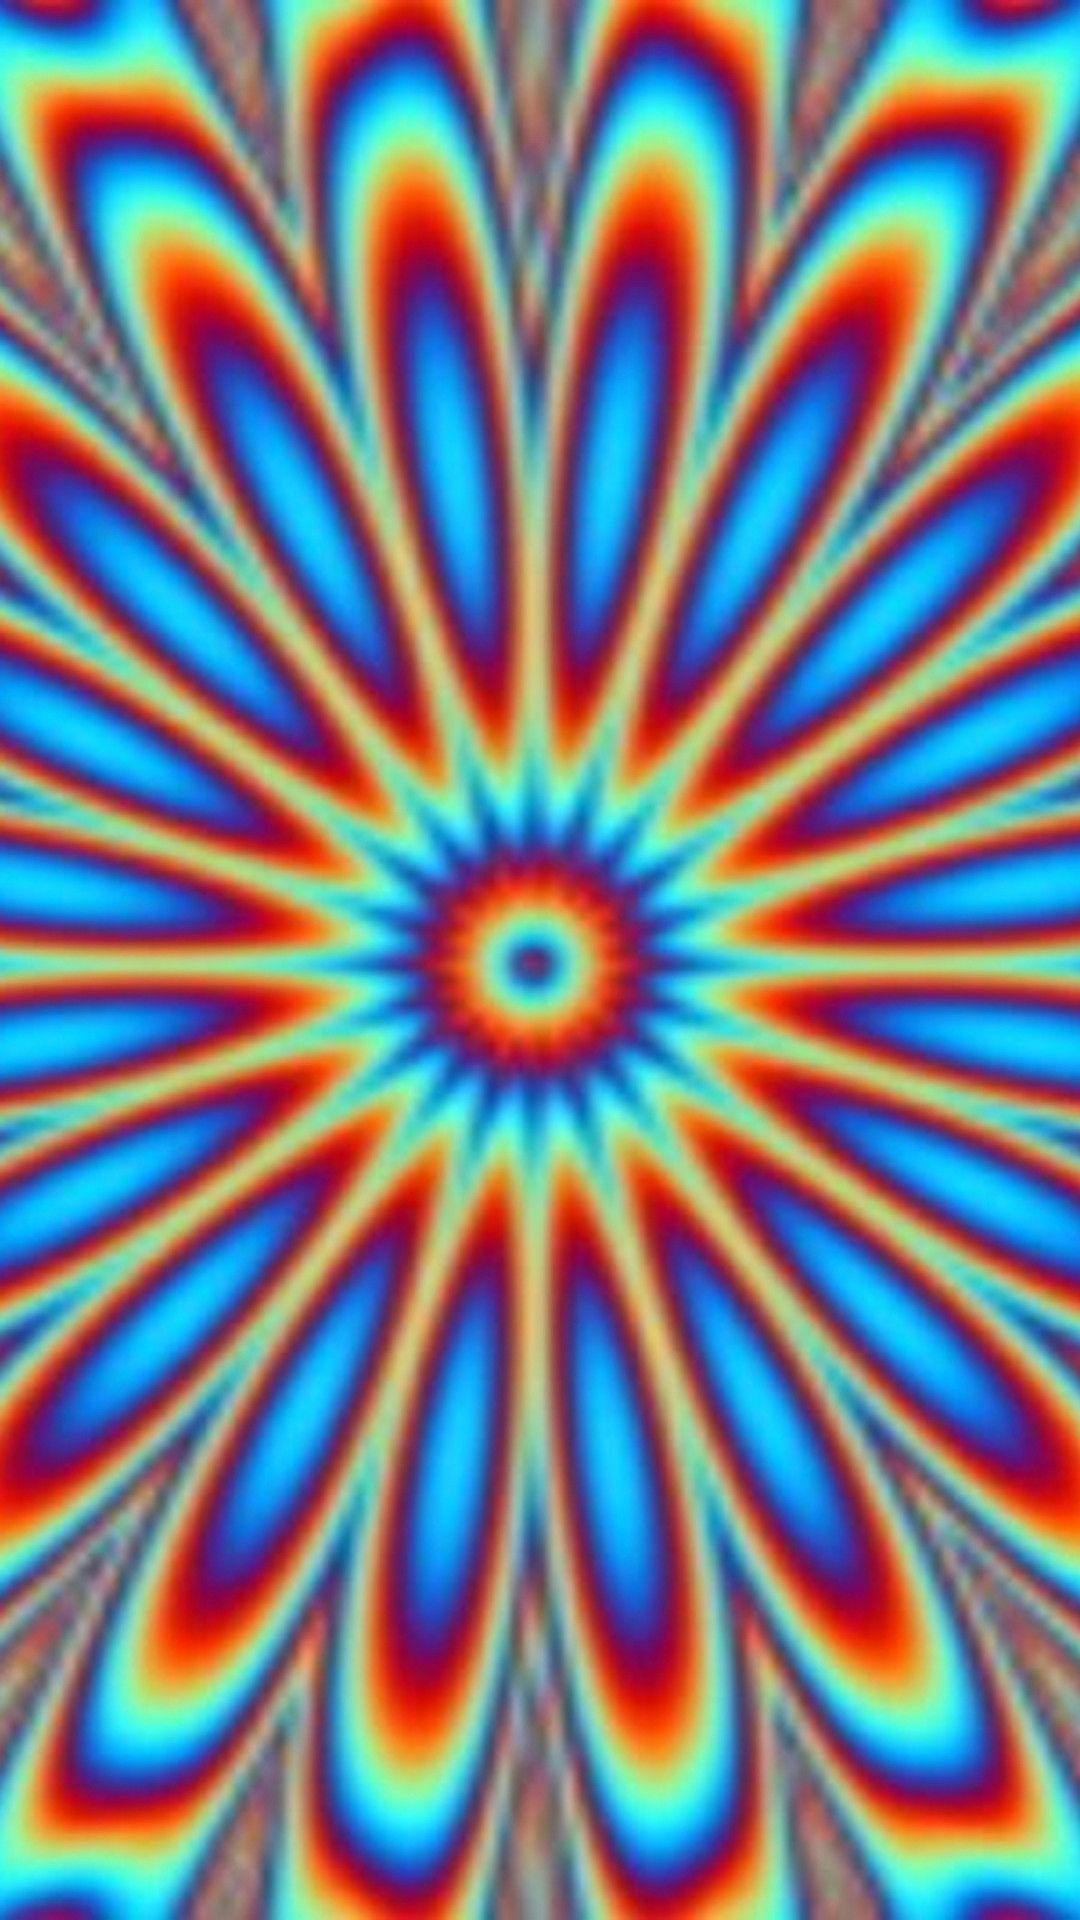 Stoner Trippy Psychedelic Art Trippy Designs Iphone Wallpaper